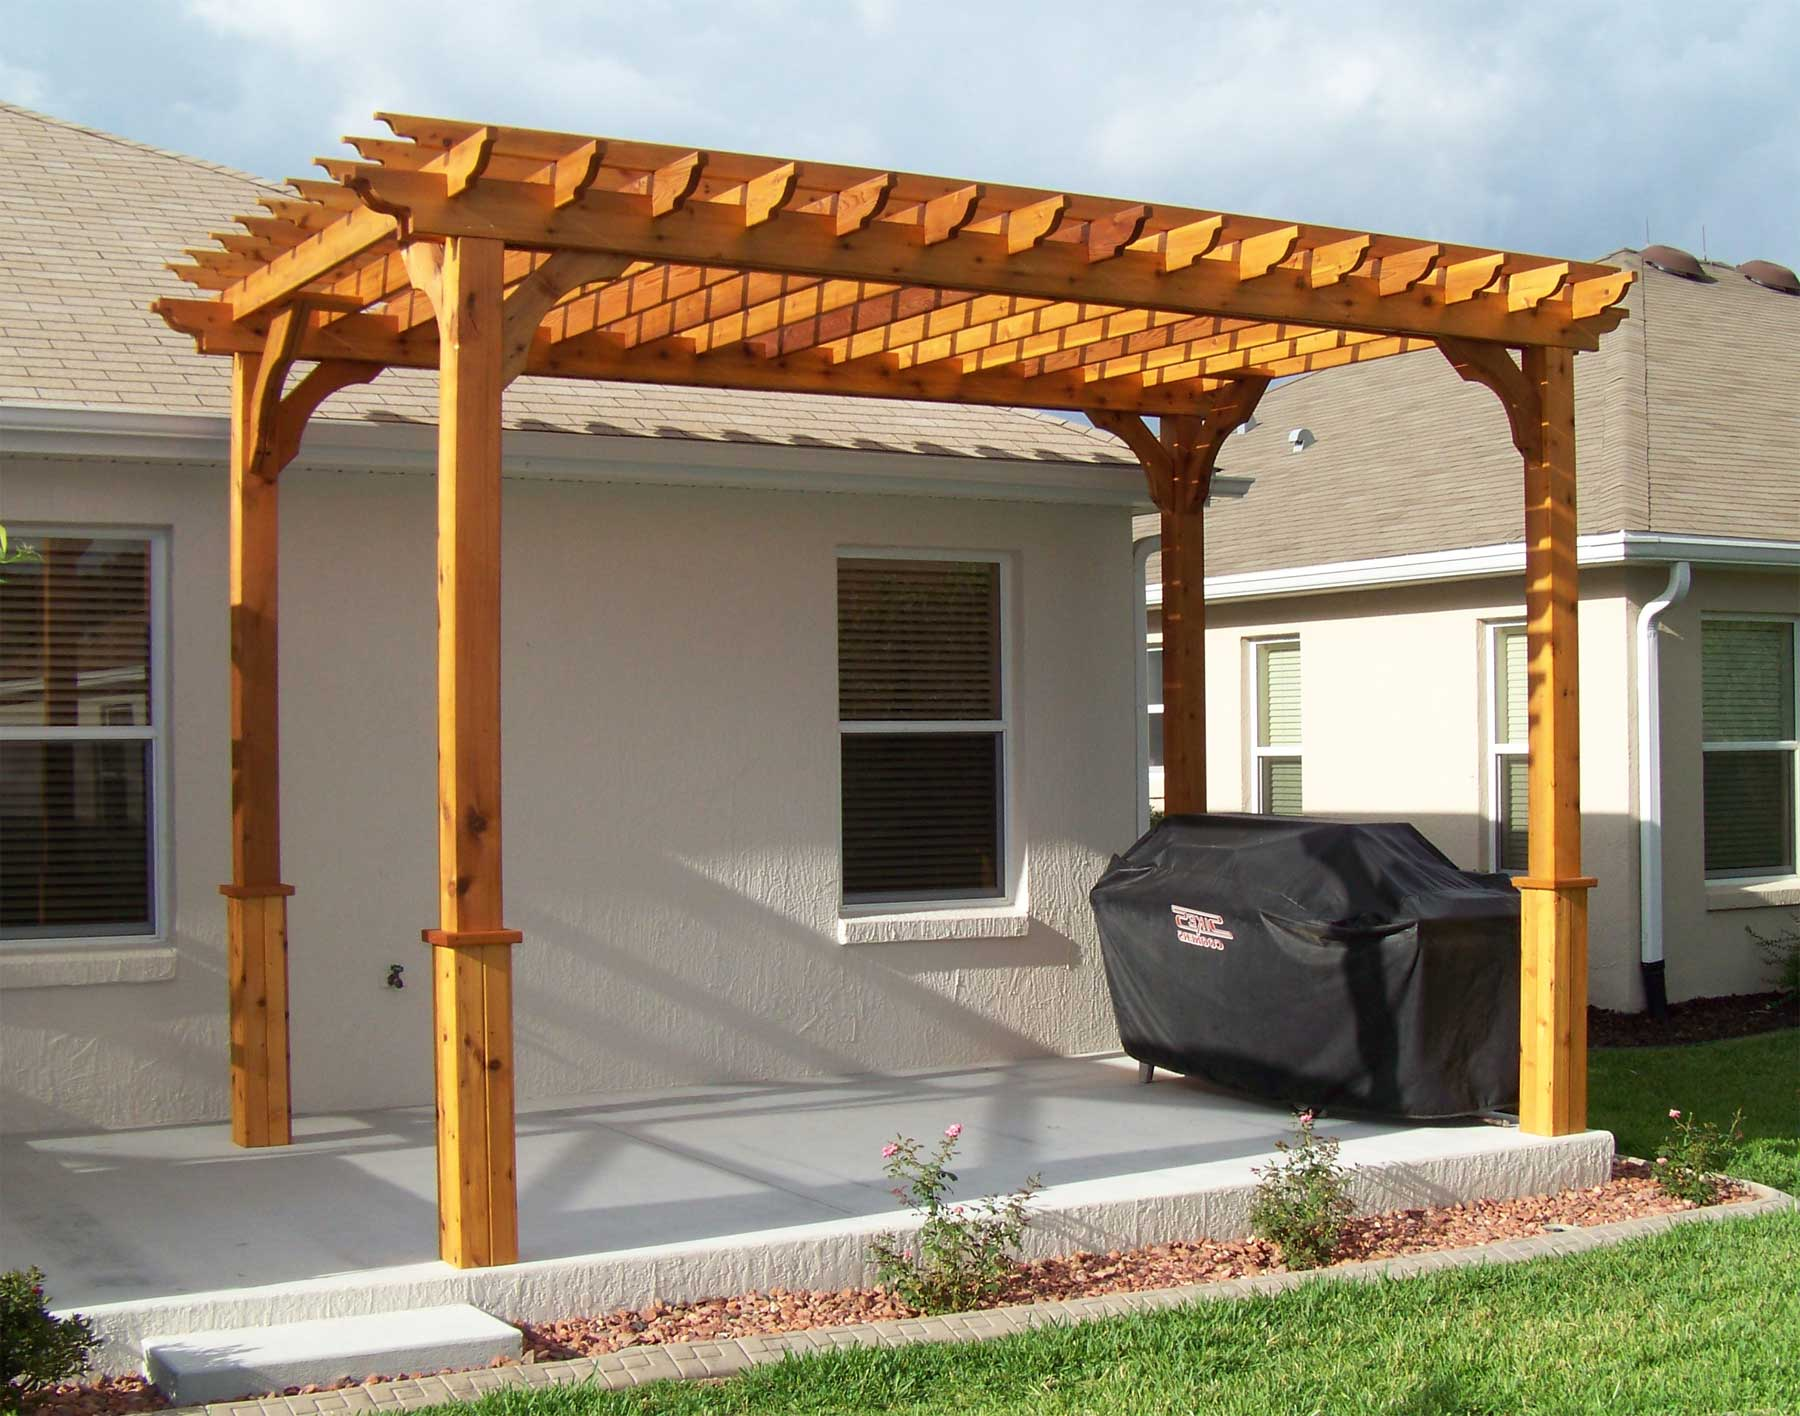 red cedar vintage classic pergolas pergolas by material. Black Bedroom Furniture Sets. Home Design Ideas